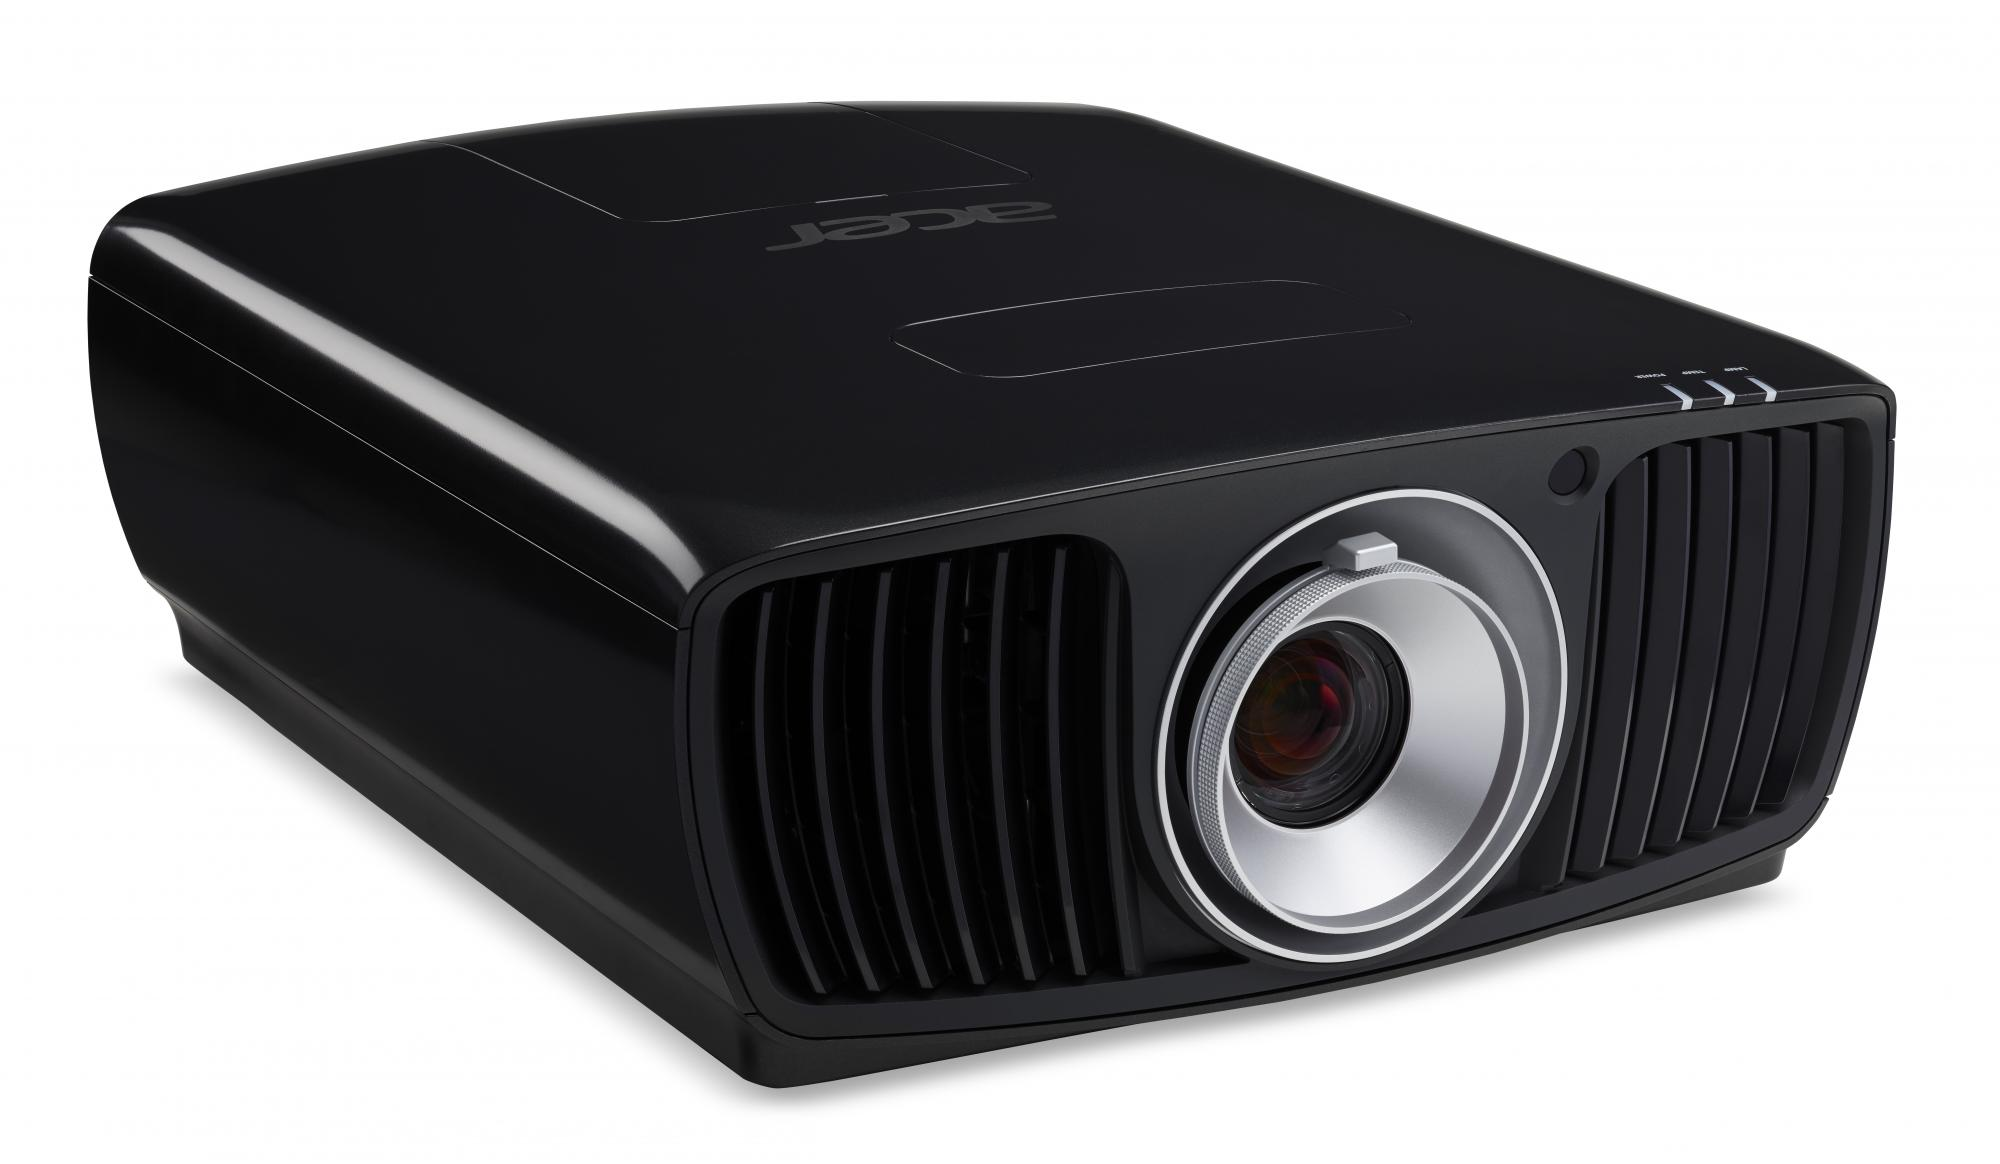 Acer 4k dlp v9800 projector review avforums for Mirror projector review